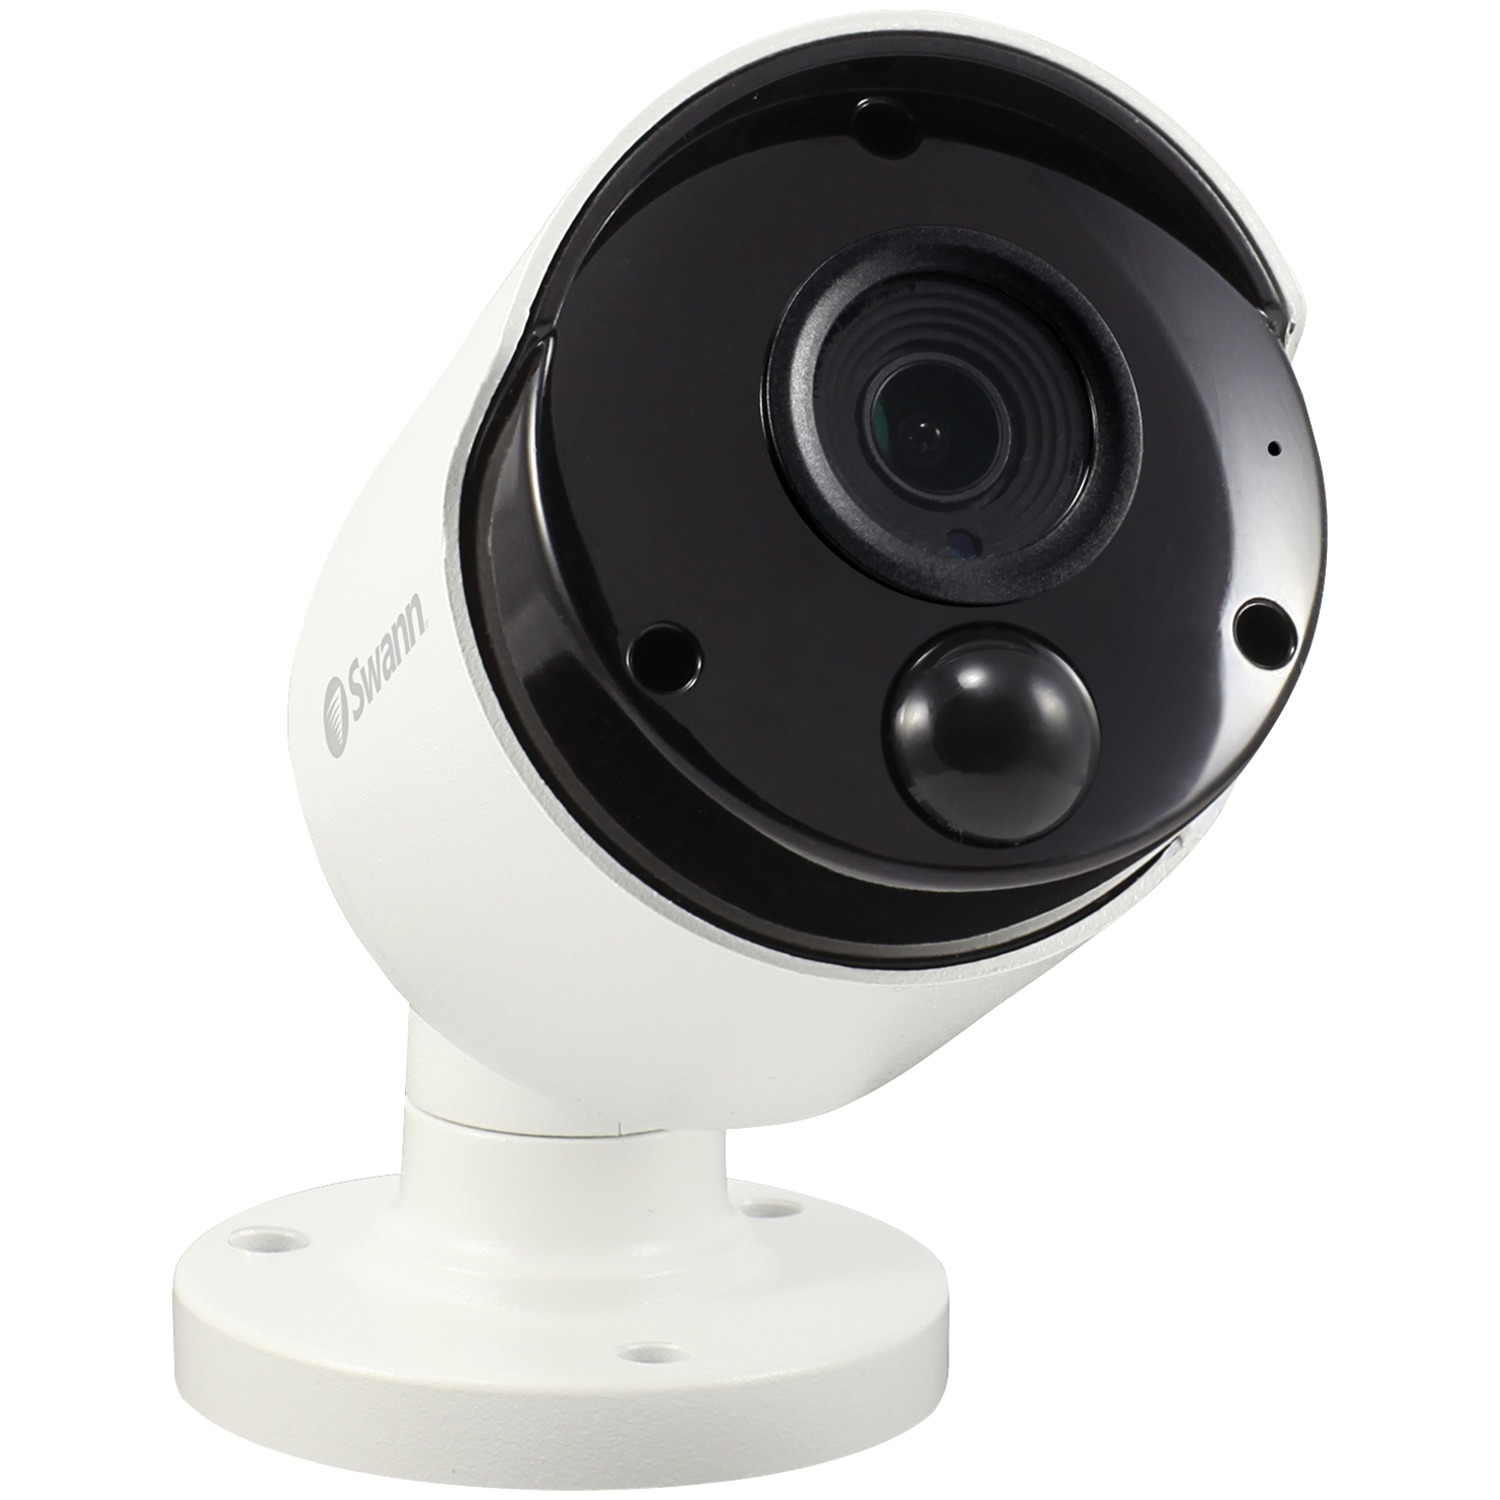 Swann SWNHD-865MSB-US 5-Megapixel IP True Detect Camera with Audio (Bullet)